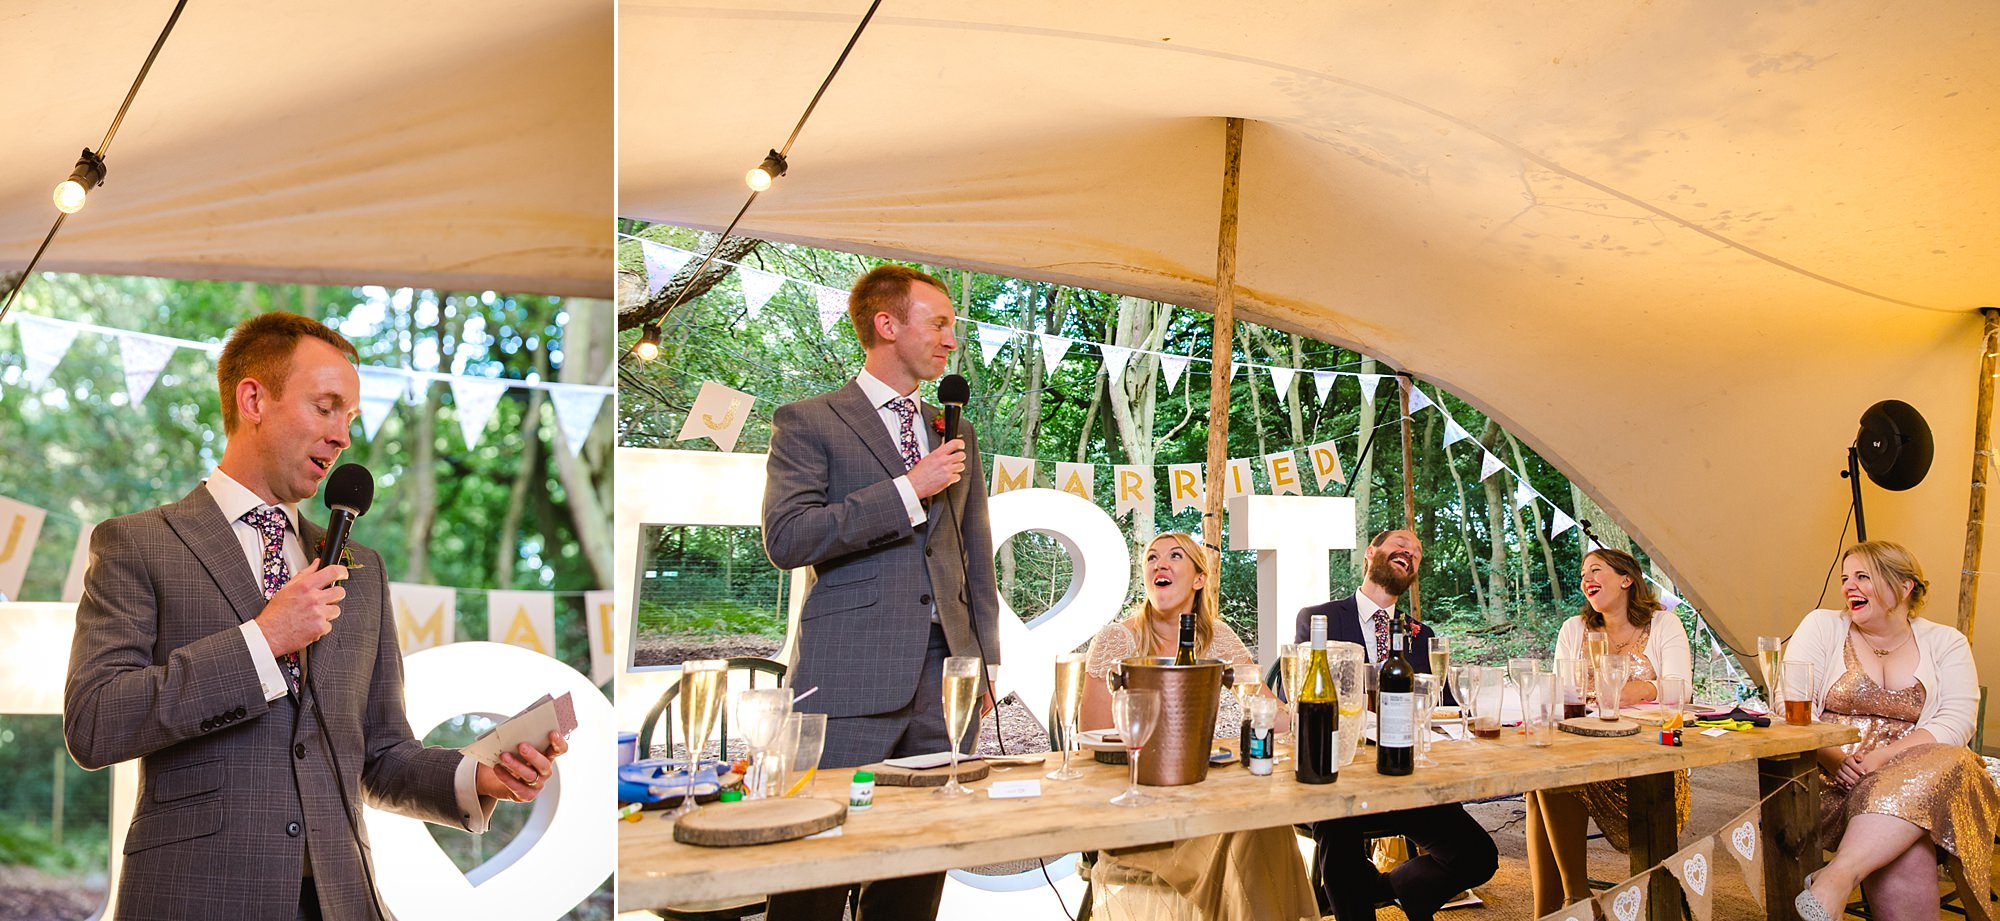 Woodland Weddings Tring best man speech